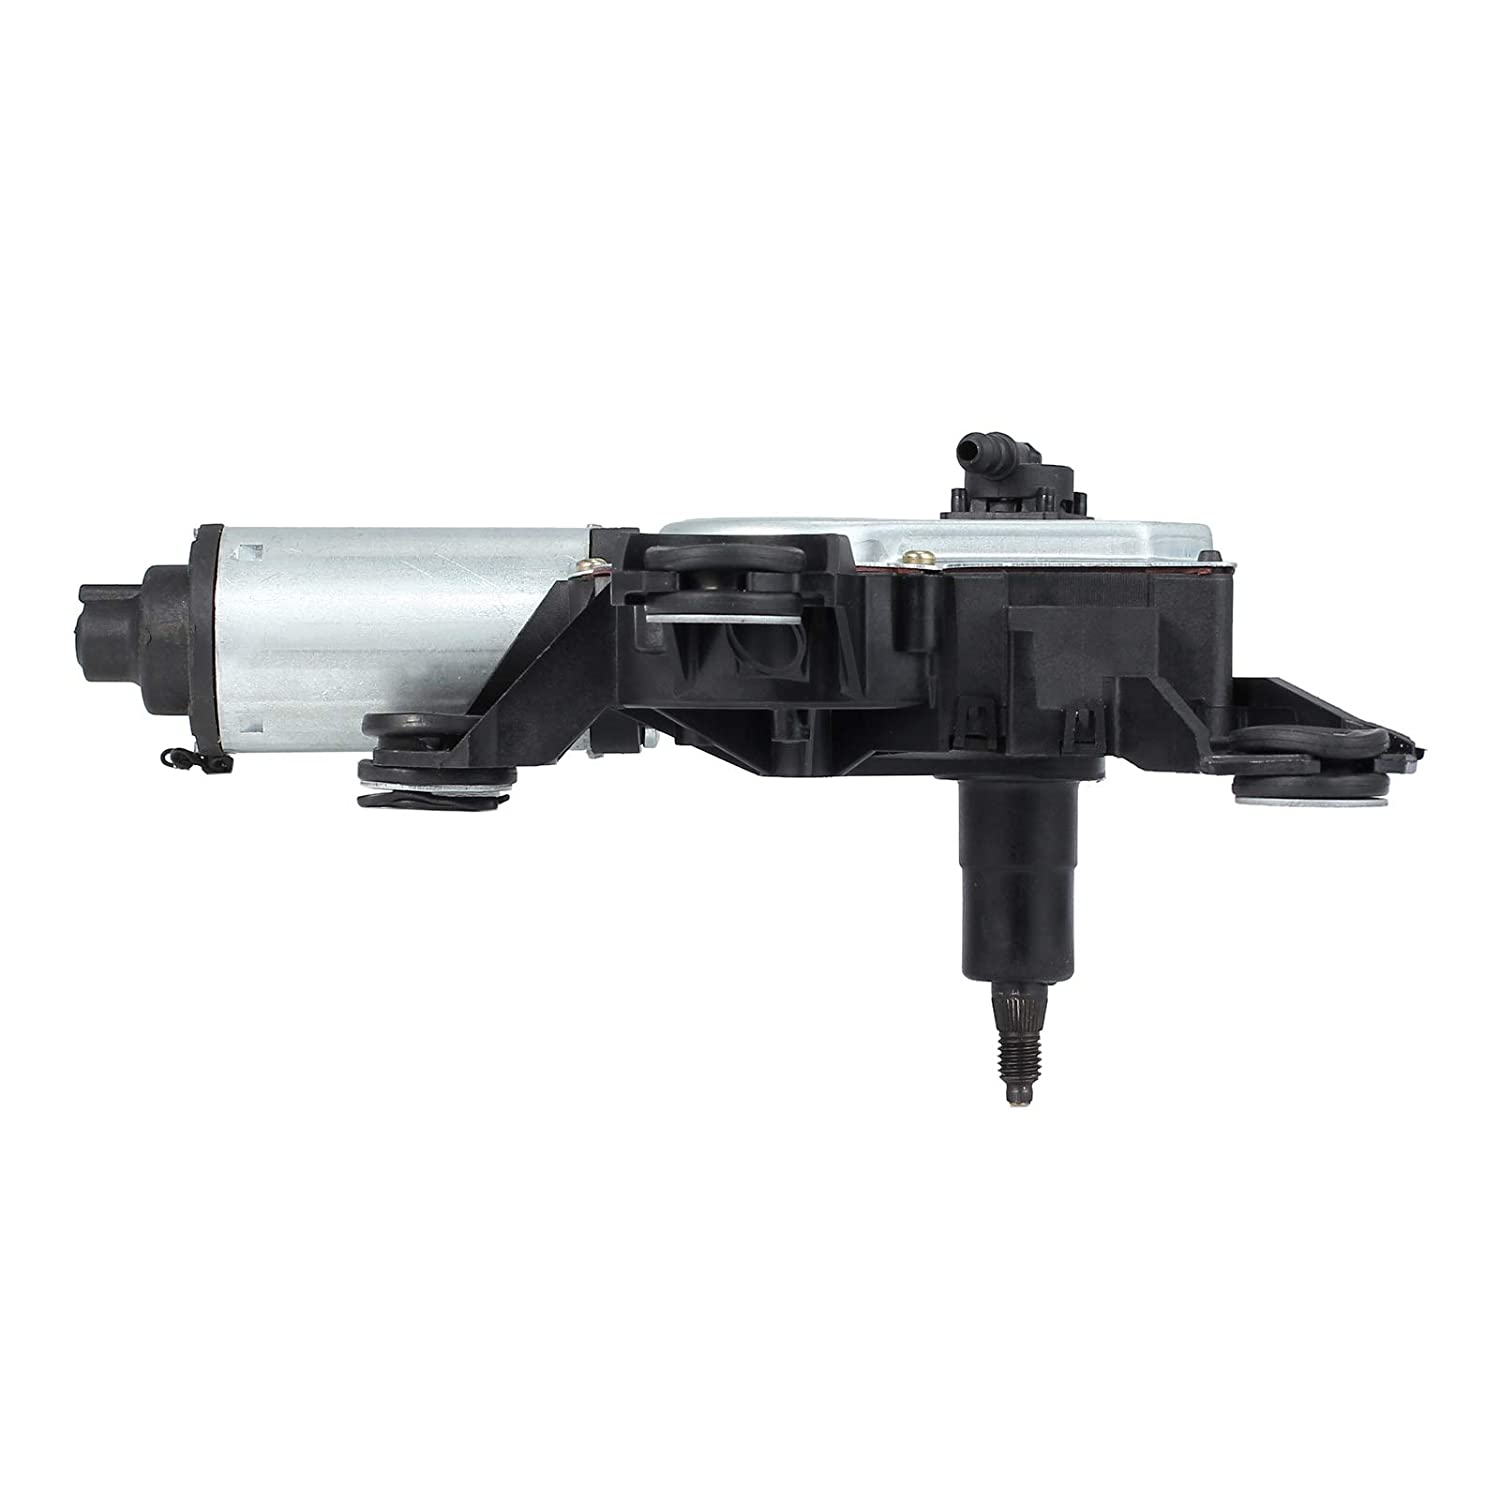 Justech Rear Windscreen Wiper Motor for A3 8P A4 A6 Q5 Q7 8E9955711 8E9955711A 8E9955711B 8E9955711C 8E9955711D 8E9955711E